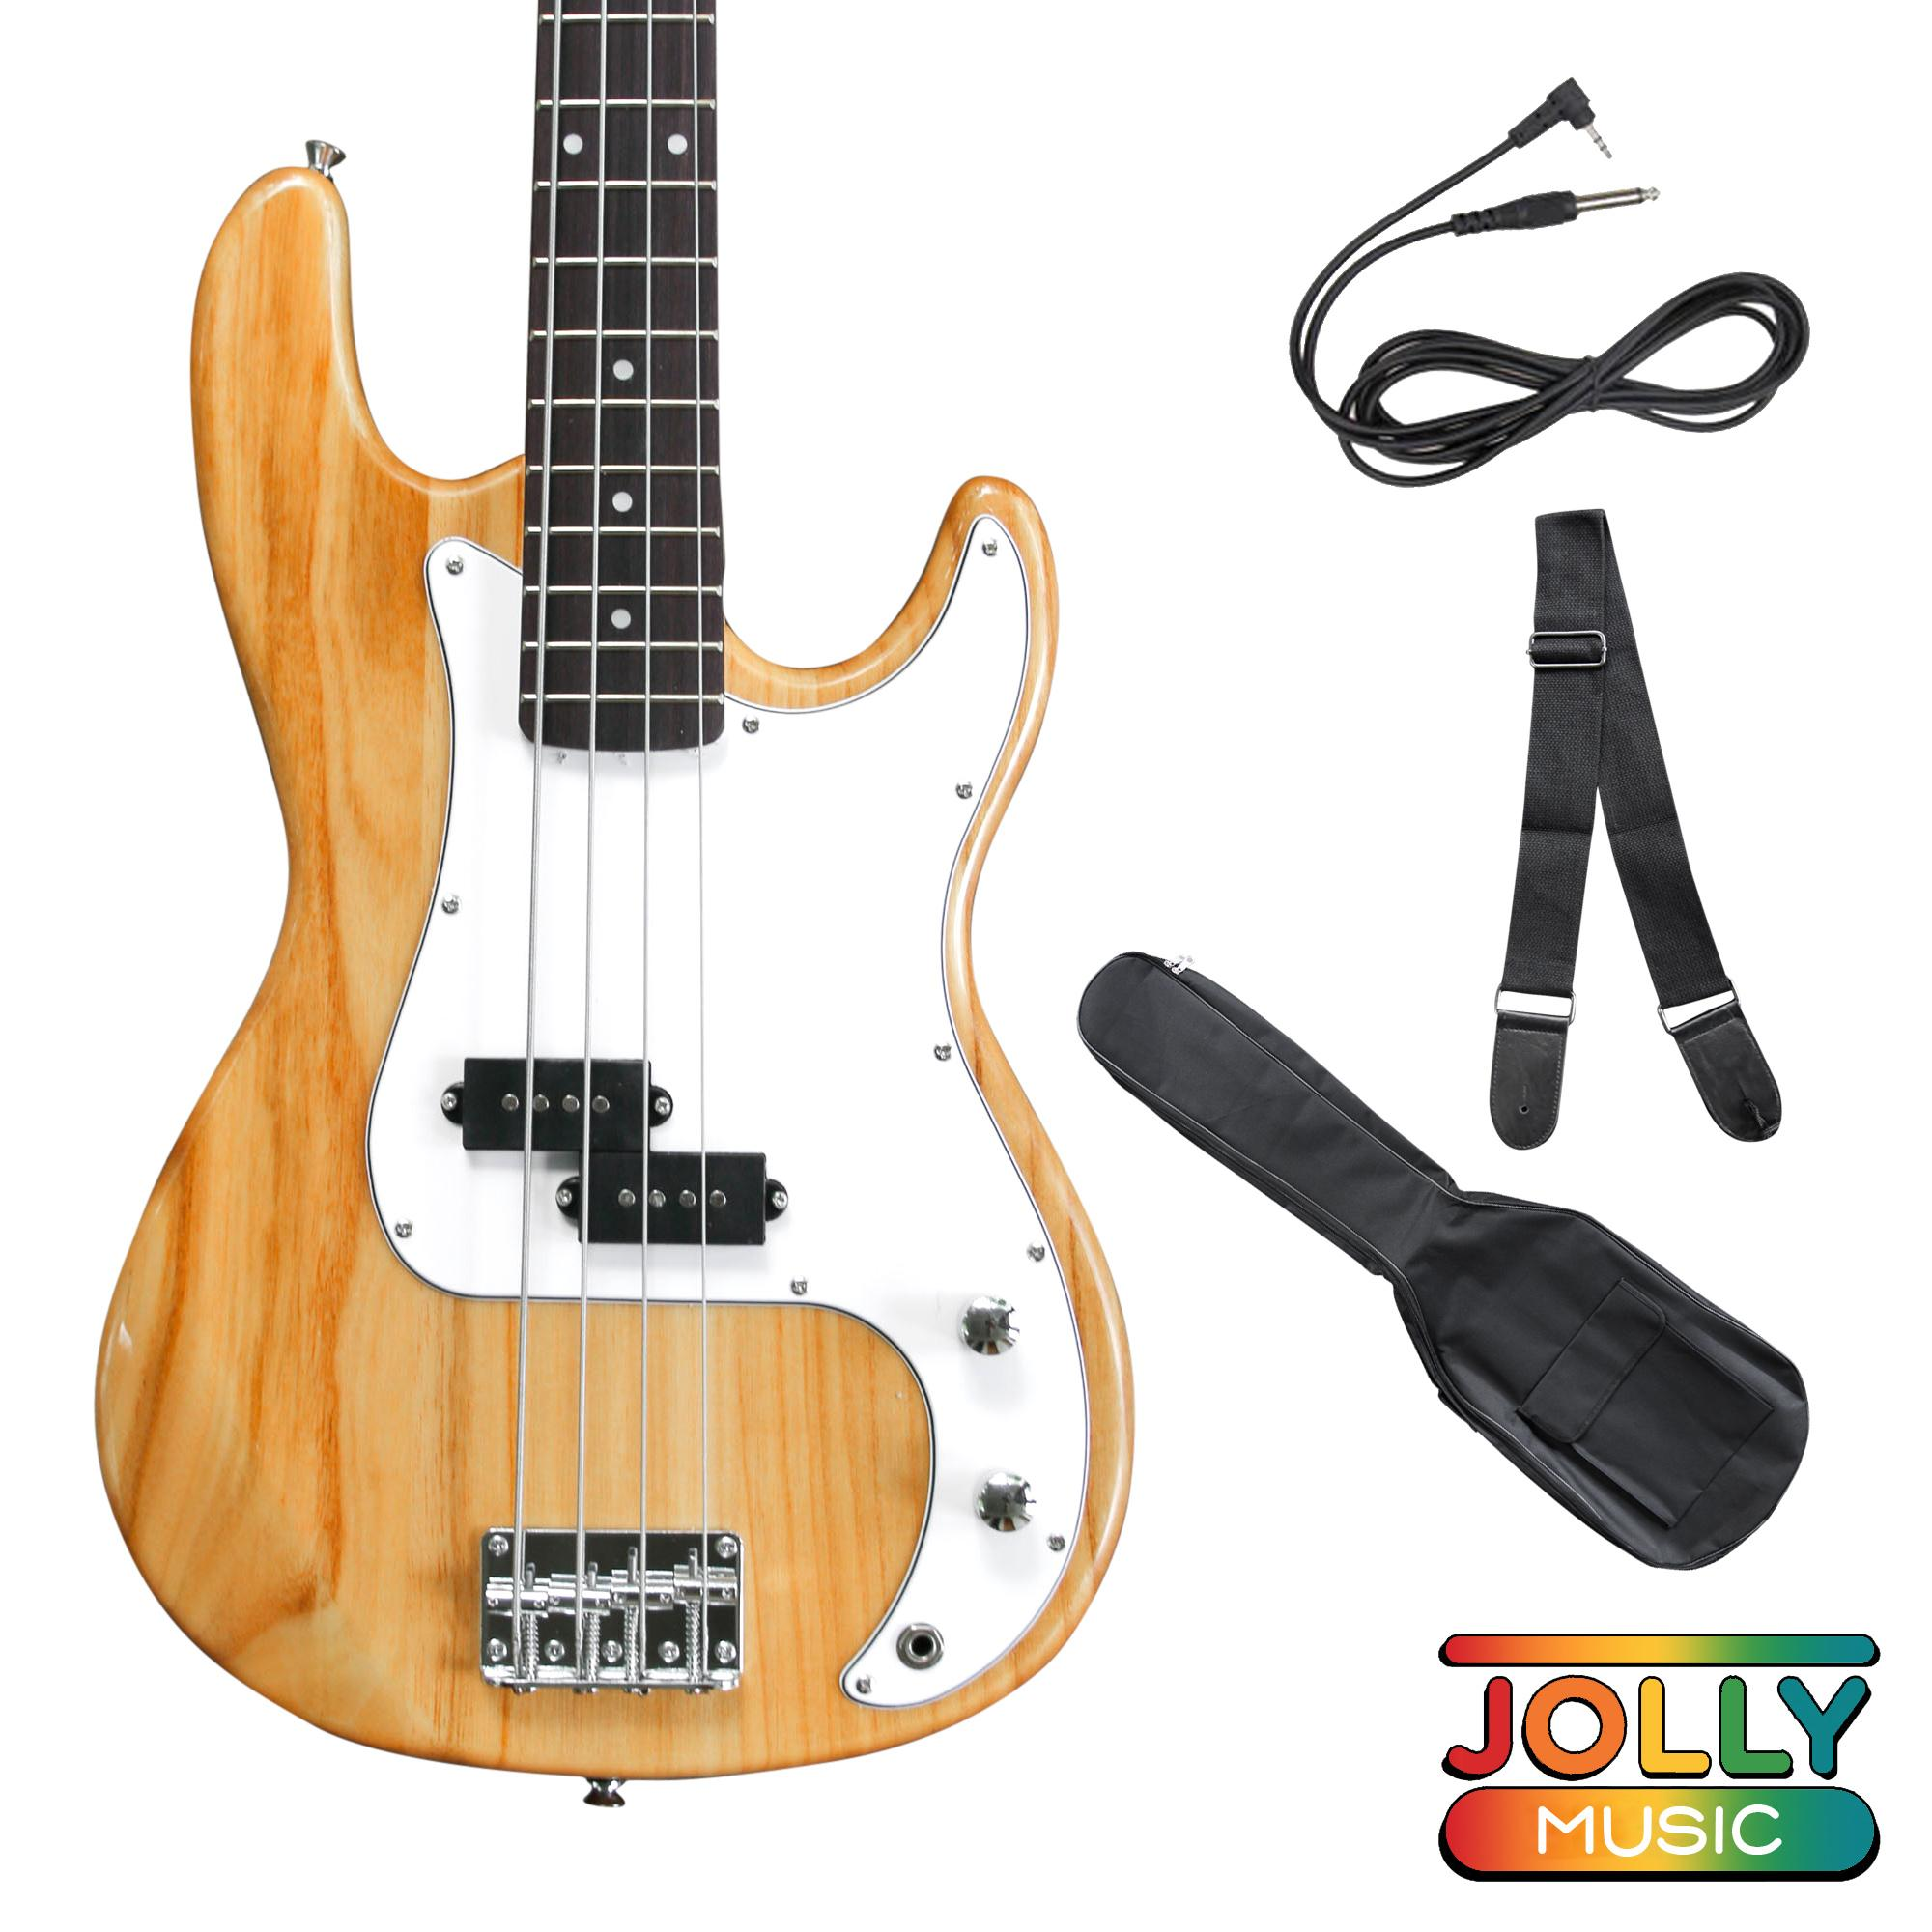 p bass body dimensions wiring diagram receptacle guitars for sale guitar best seller prices brands in deviser pb electric with cable strap and gigbag